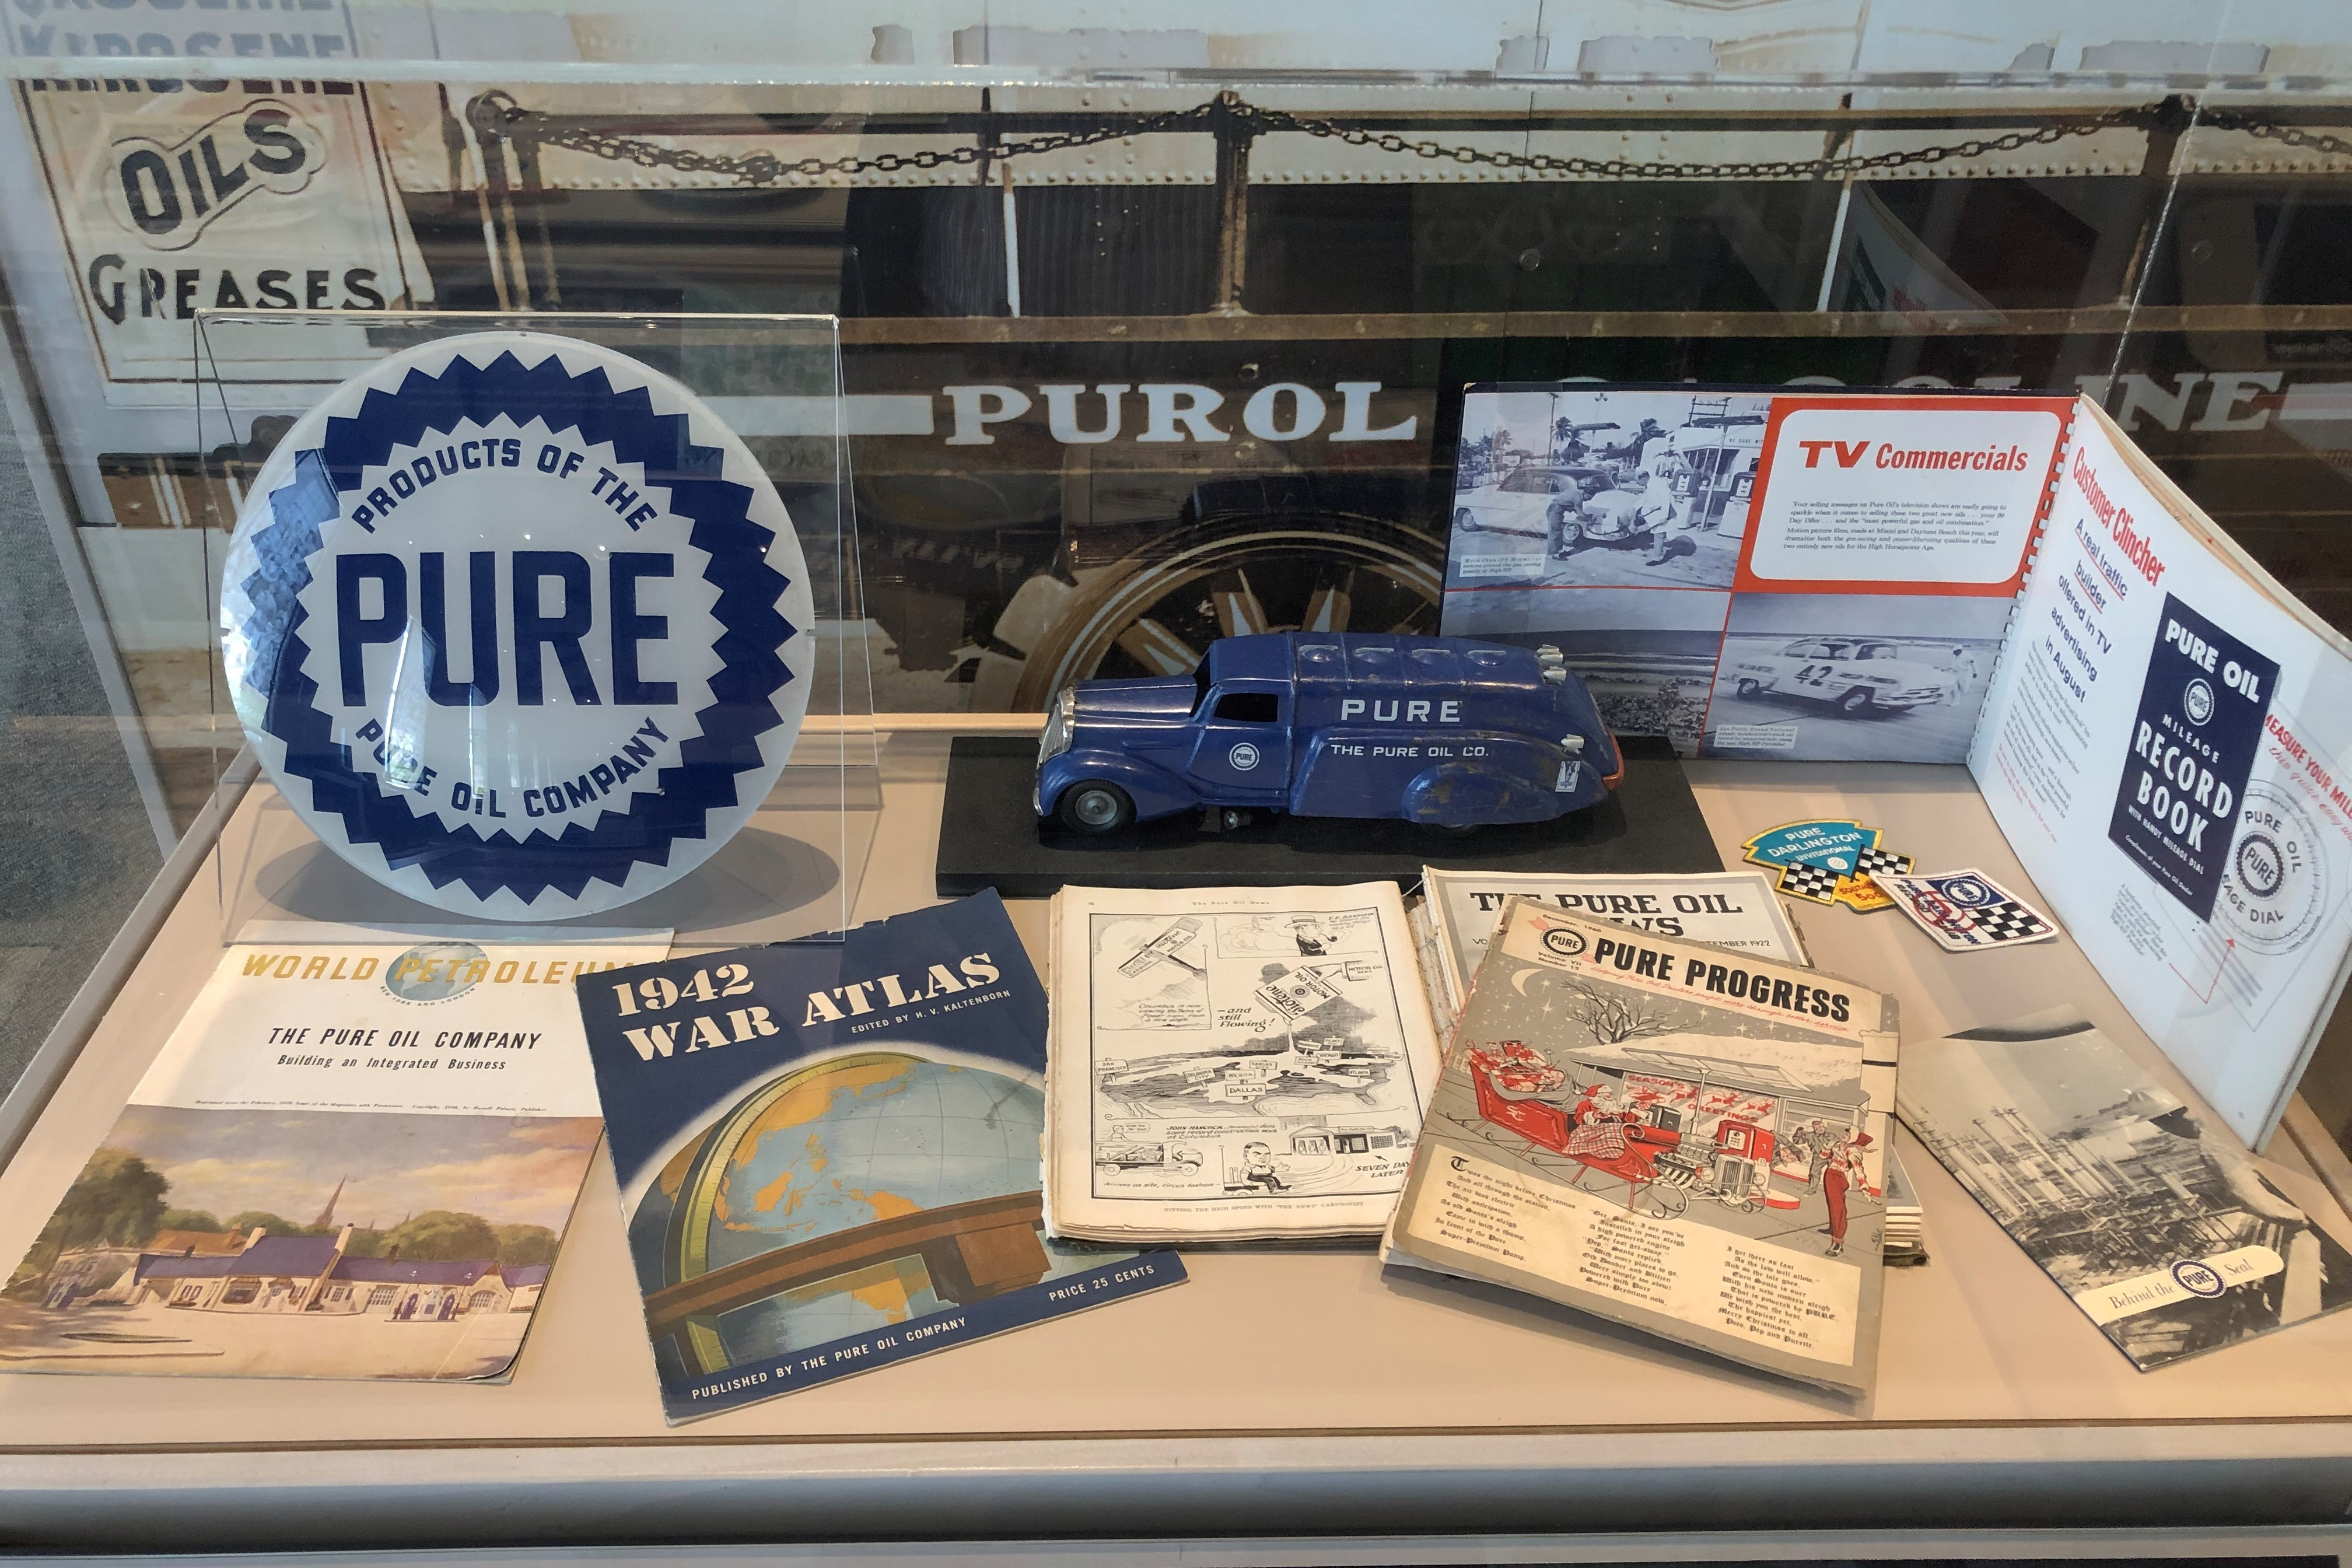 Pure Oil produced many promotional materials over the years and was a widely known brand. In the 1960's, Pure was ranked among the 100 largest industrial corporations in the United States.